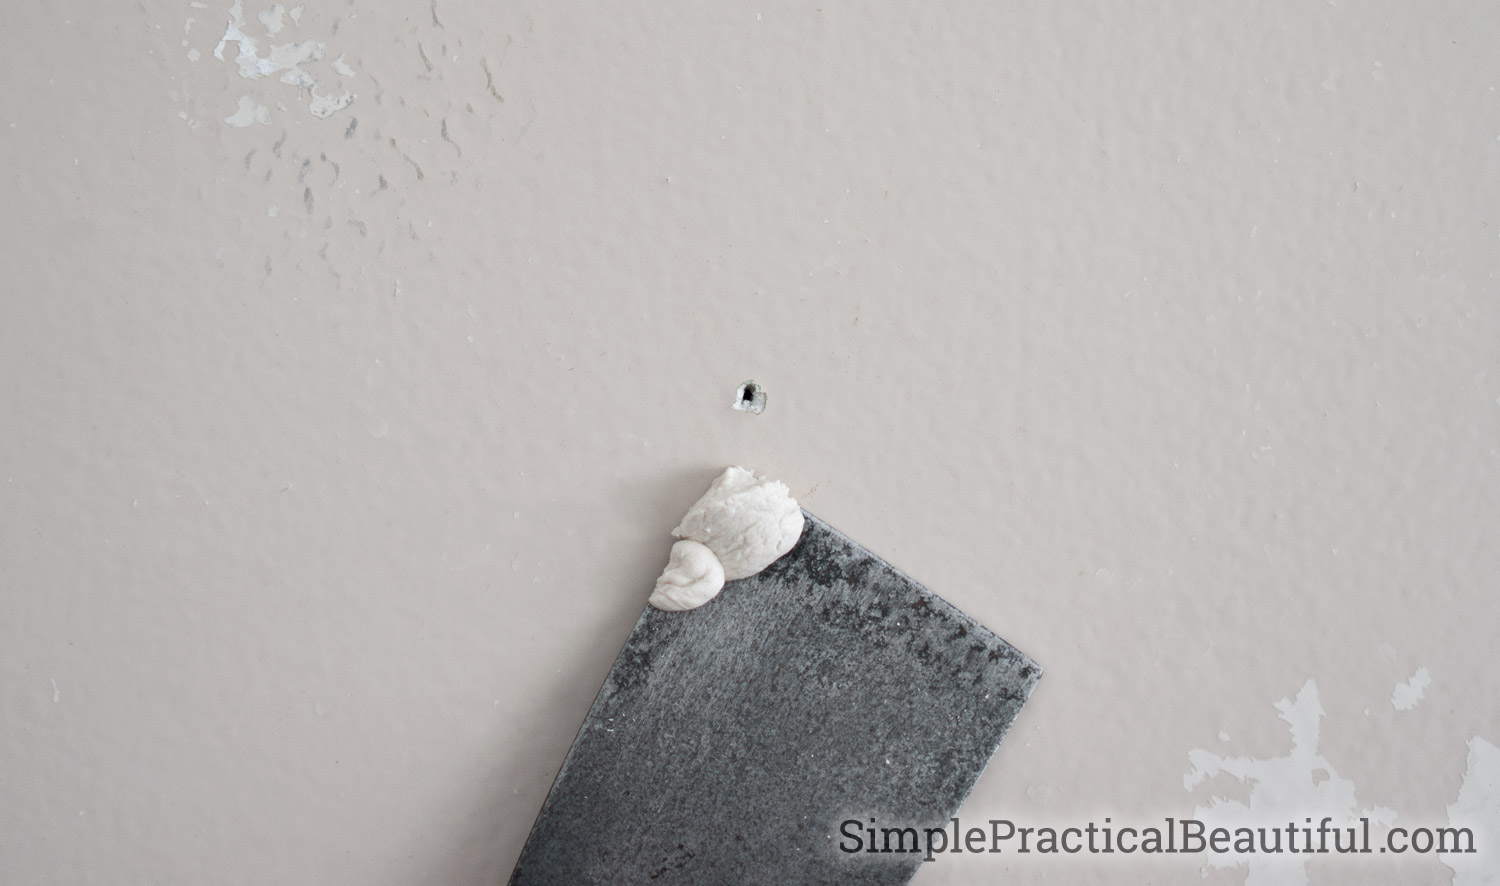 patch a small hole left by a picture from nail with spackle